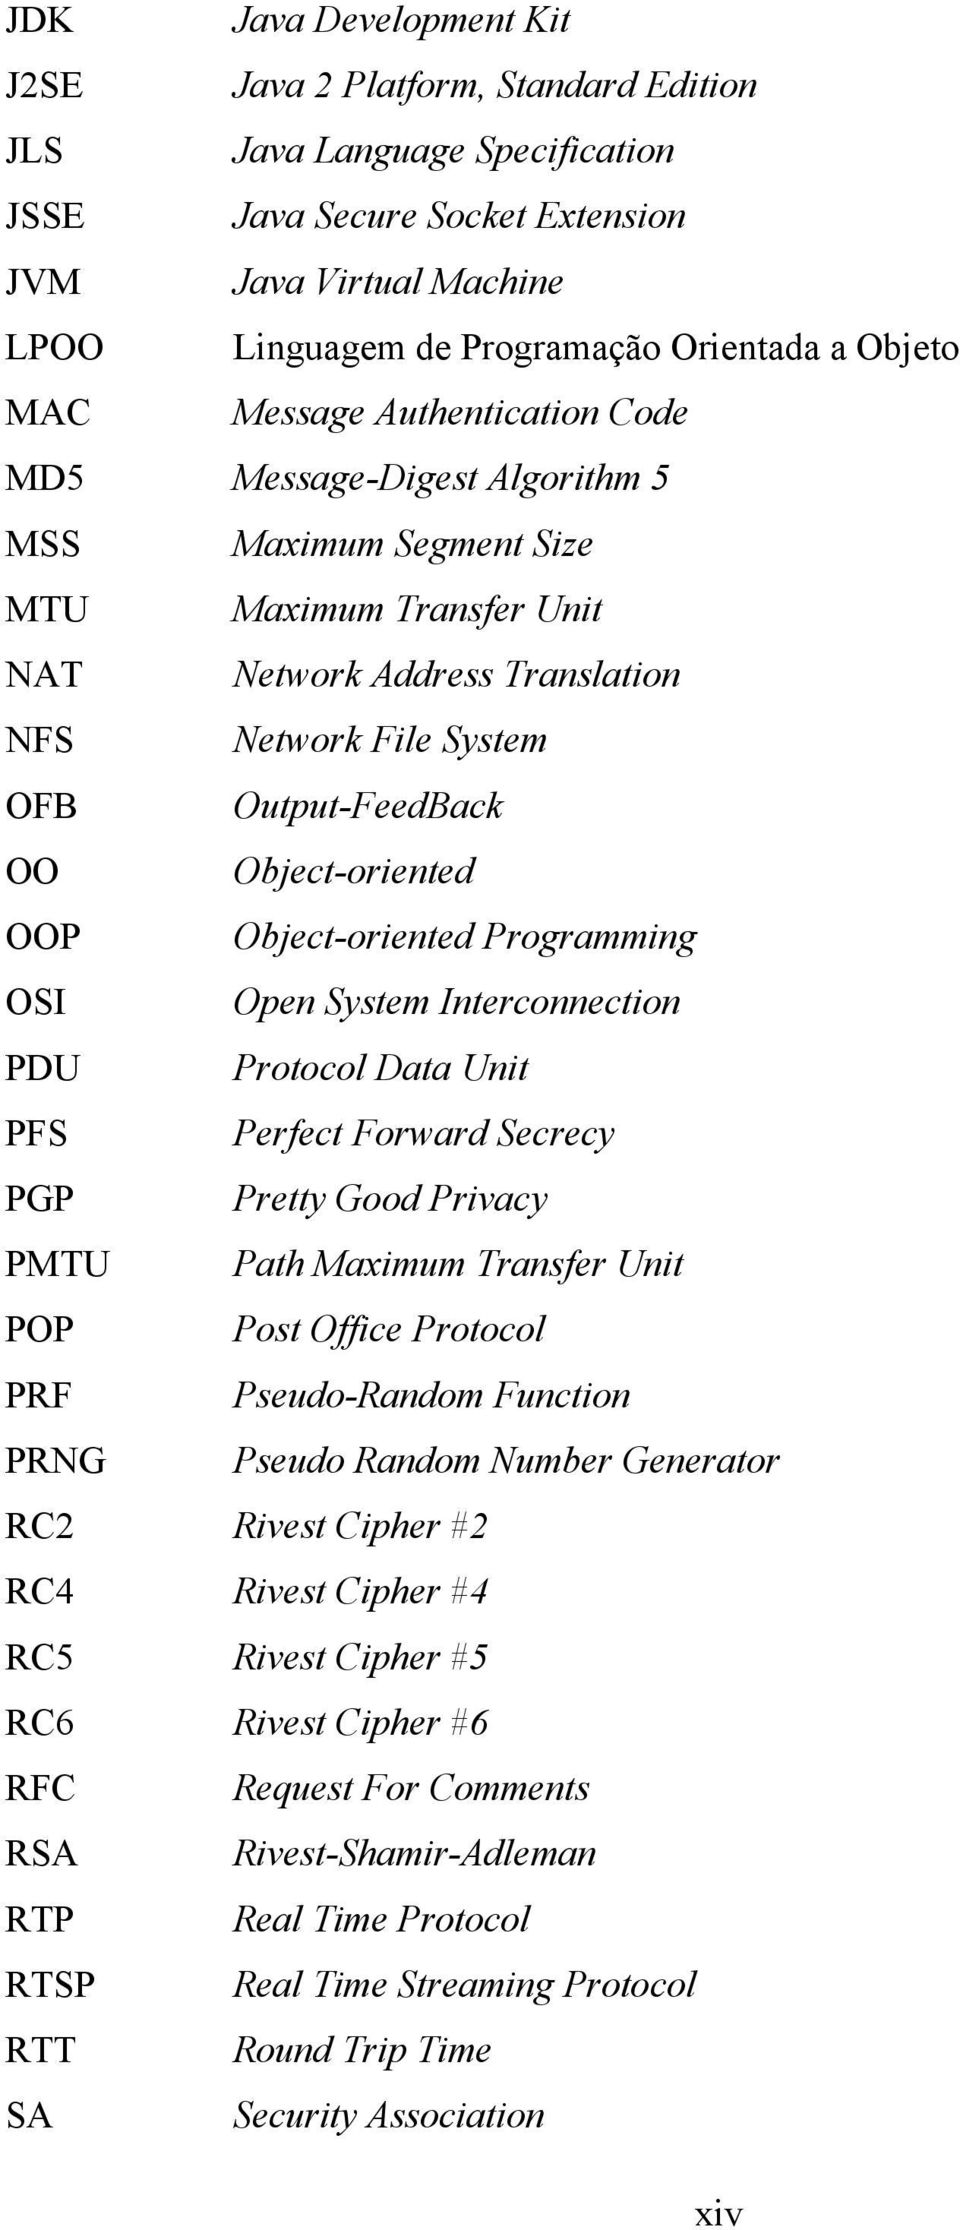 Object-oriented OOP Object-oriented Programming OSI Open System Interconnection PDU Protocol Data Unit PFS Perfect Forward Secrecy PGP Pretty Good Privacy PMTU Path Maximum Transfer Unit POP Post